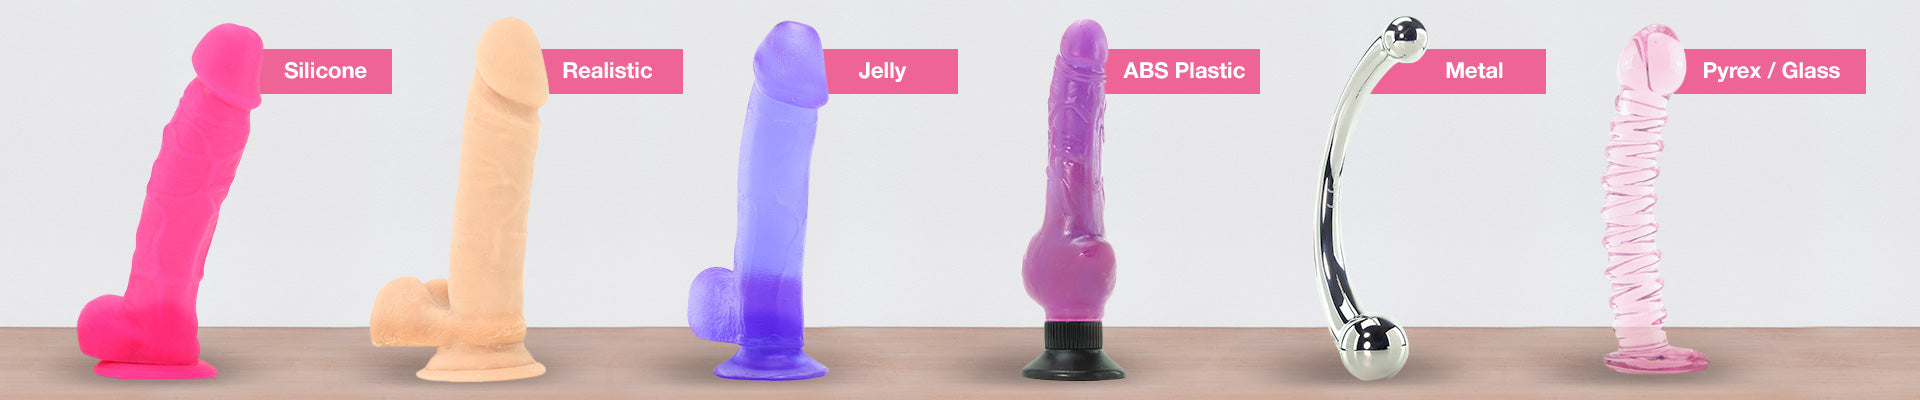 Dilo Sex Toy Materials